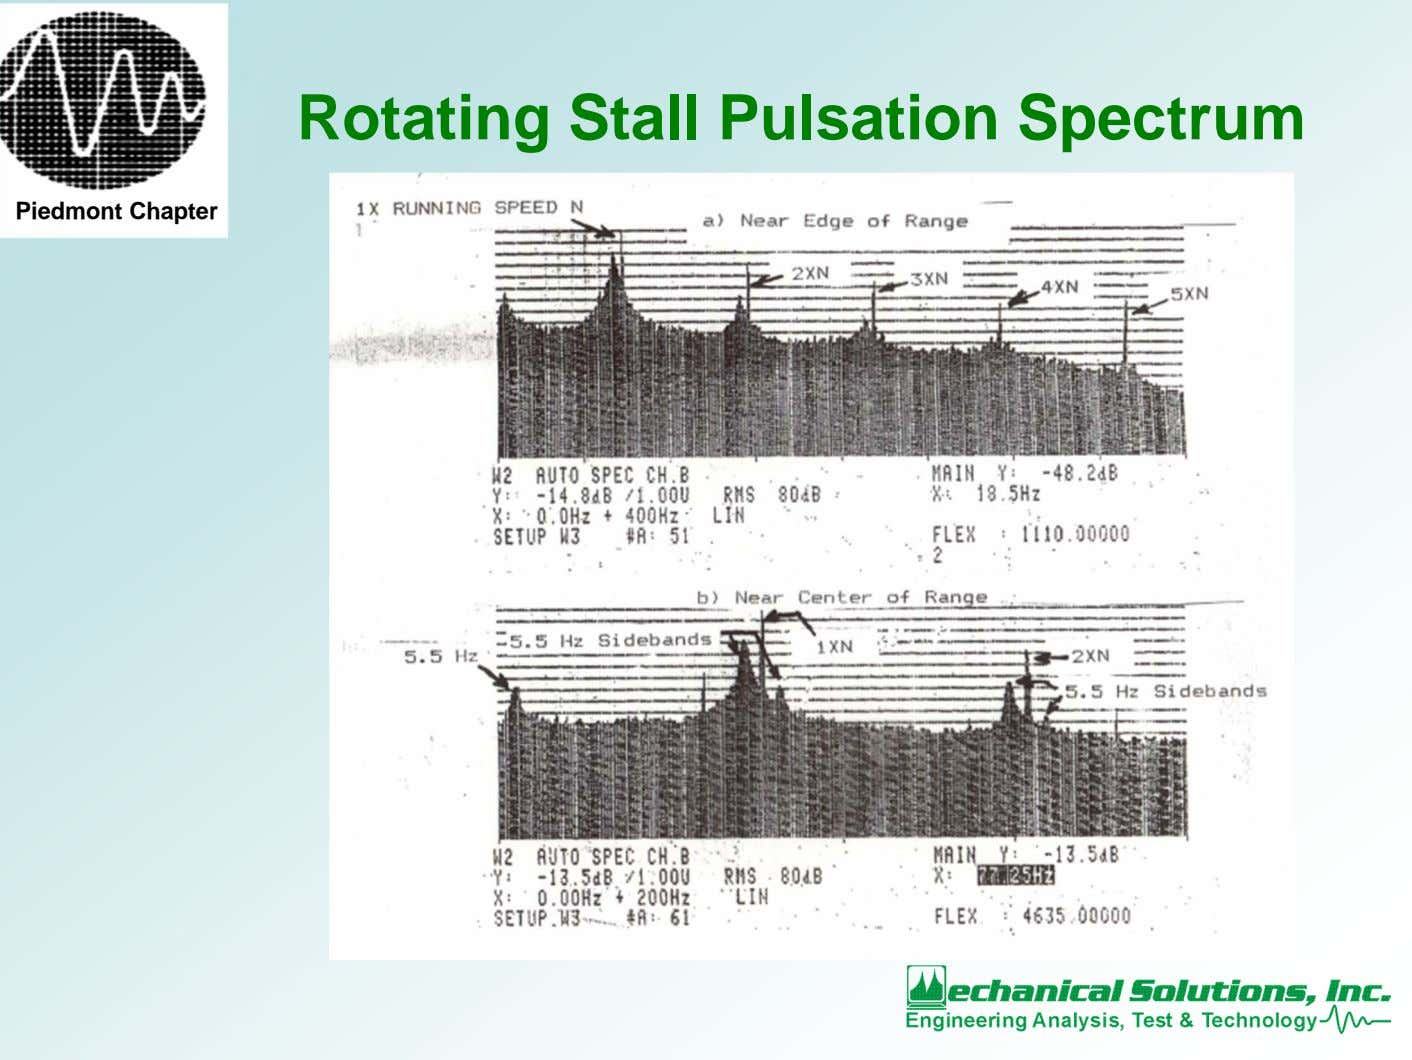 Rotating Stall Pulsation Spectrum Piedmont Chapter